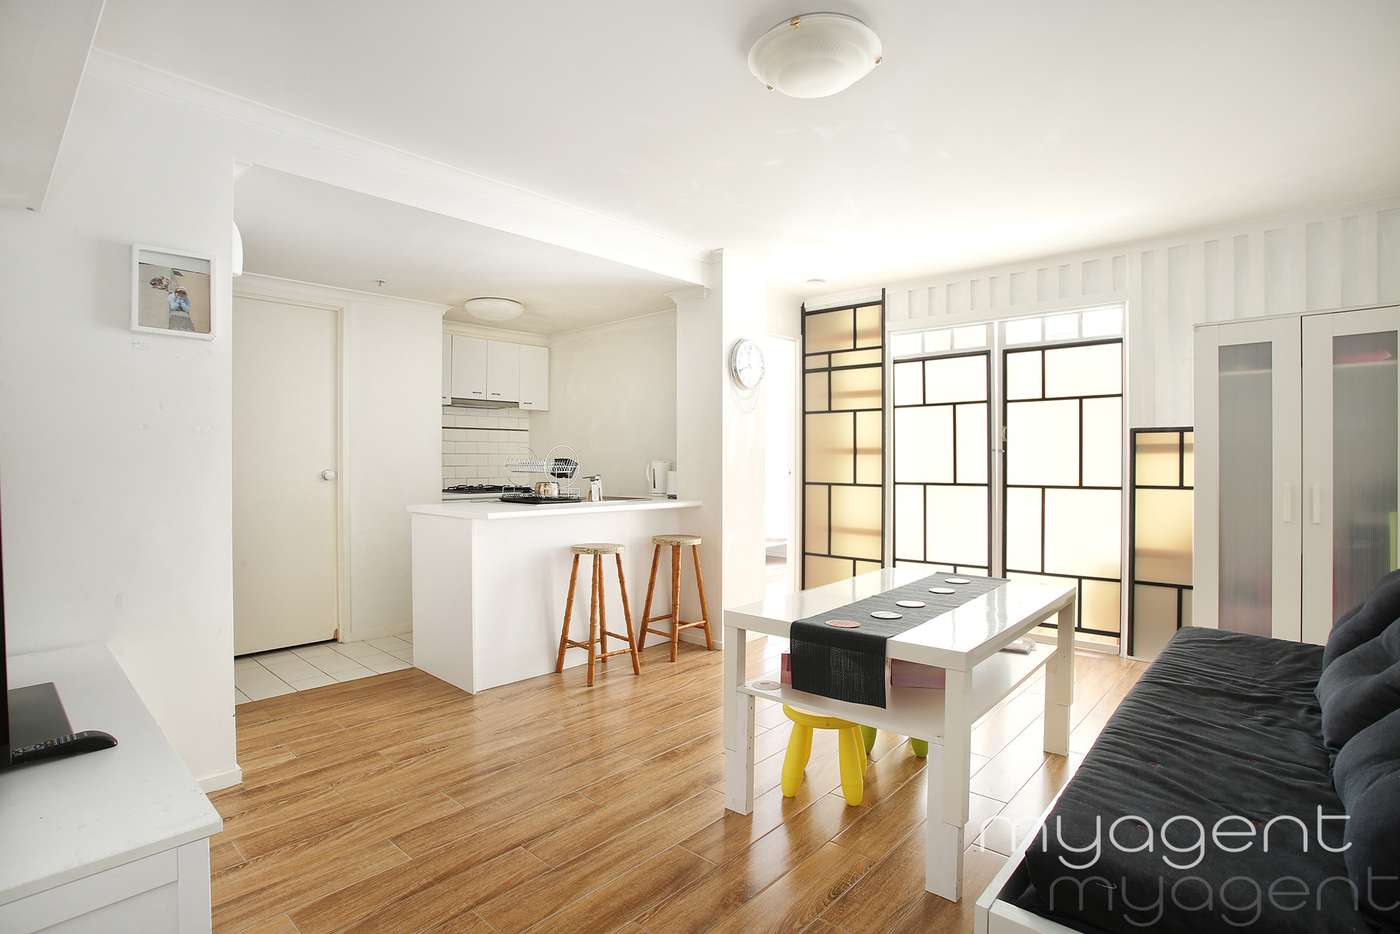 Main view of Homely apartment listing, 27/416 St Kilda Road, Melbourne VIC 3004